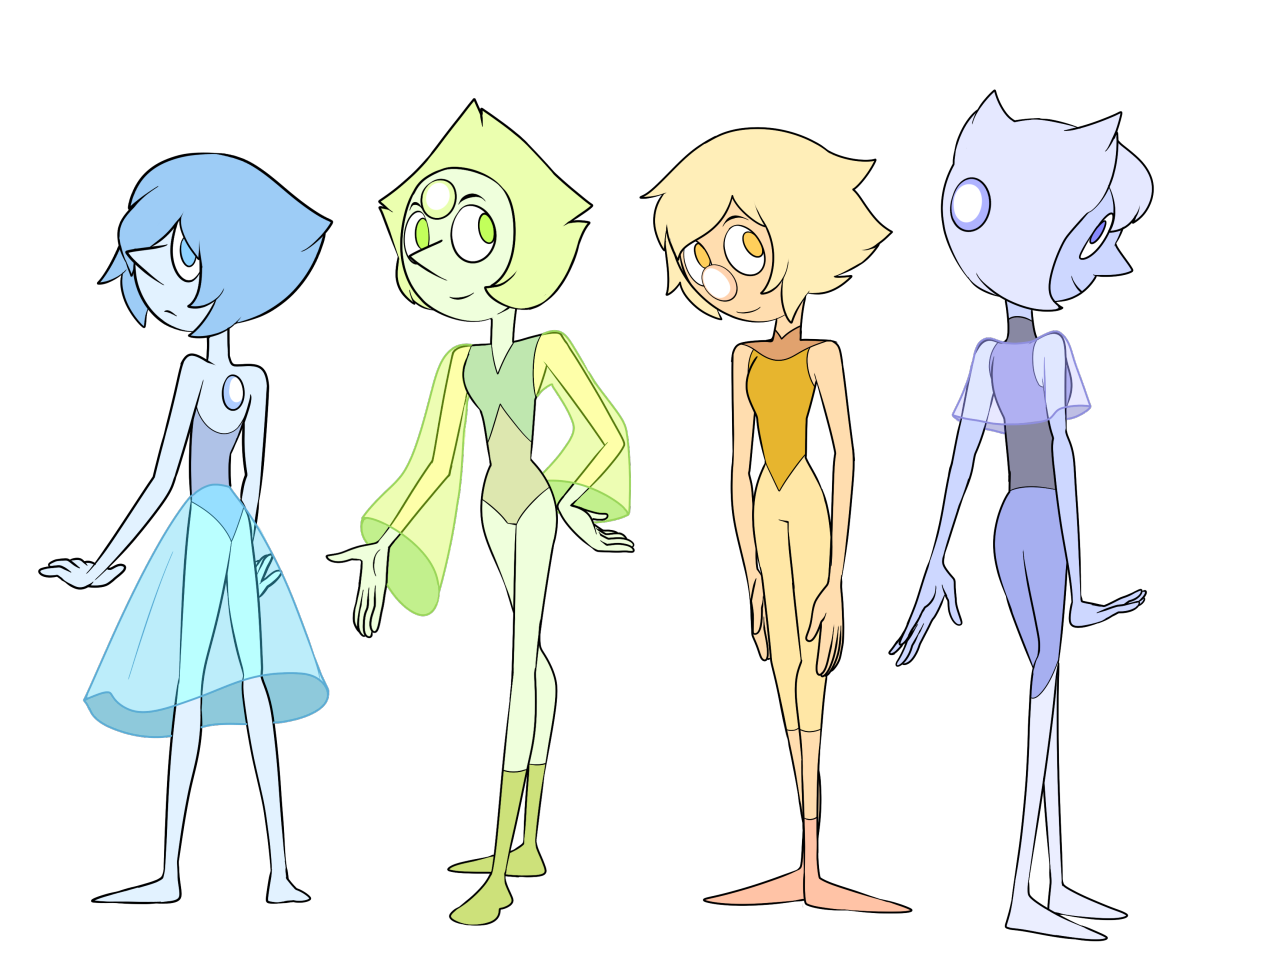 Some Pearls